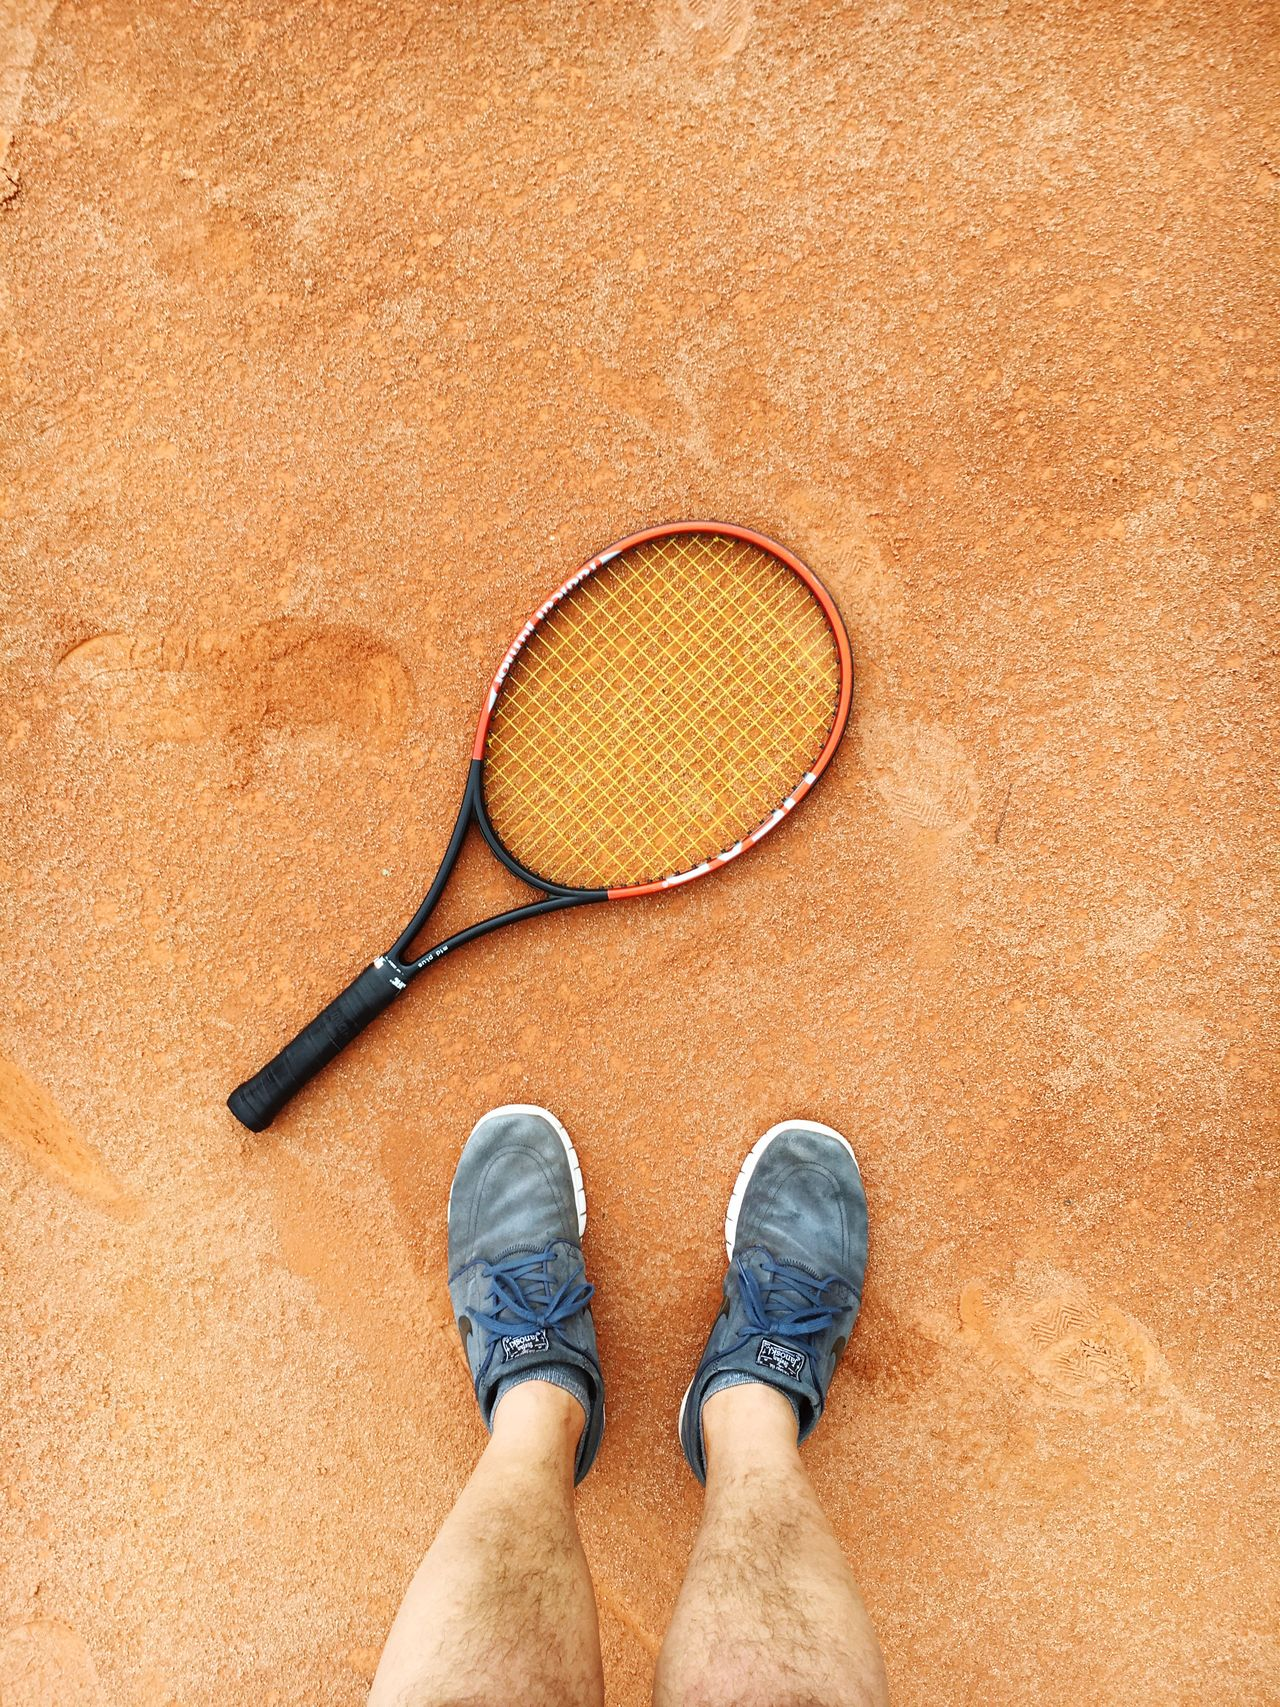 Low section of man standing by tennis racket on clay court